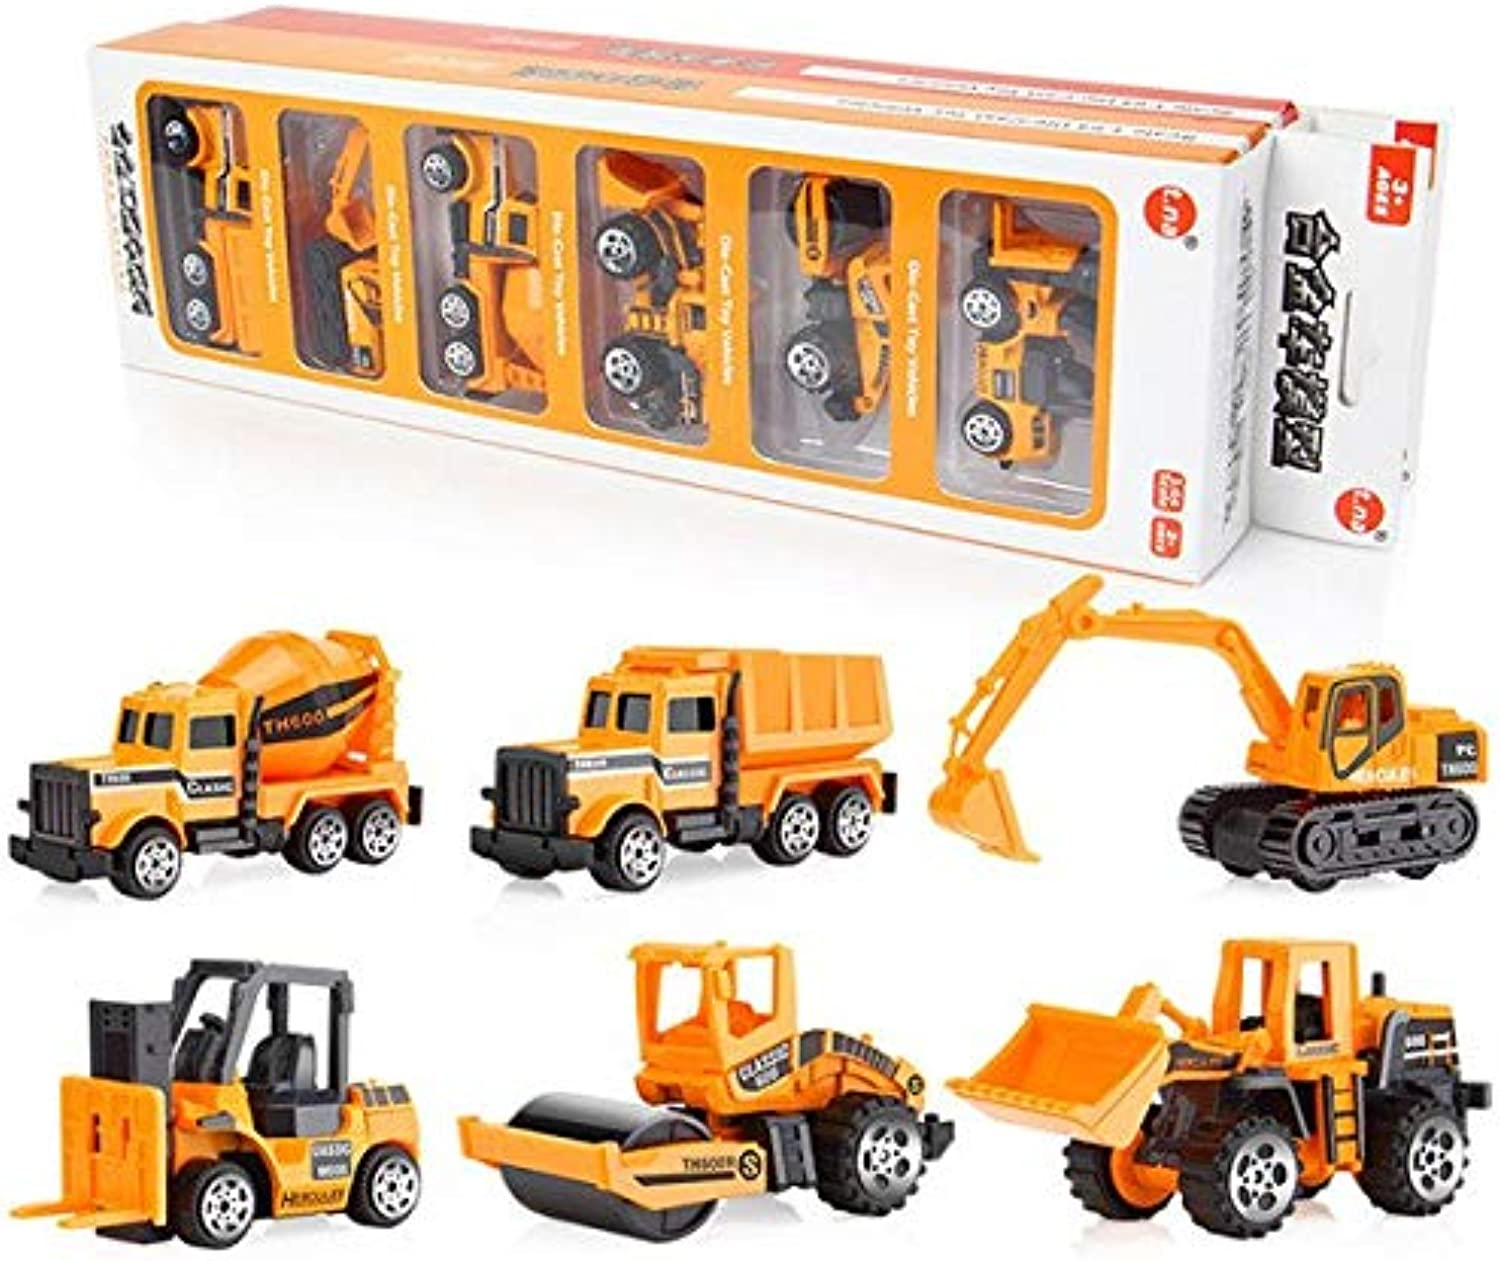 Generic 6 Types   Set Diecast Mini Alloy Construction Vehicle Engineering Car Dumpcar Dump Truck Model Classic Toy Mini Gift for boy F5 Yellow